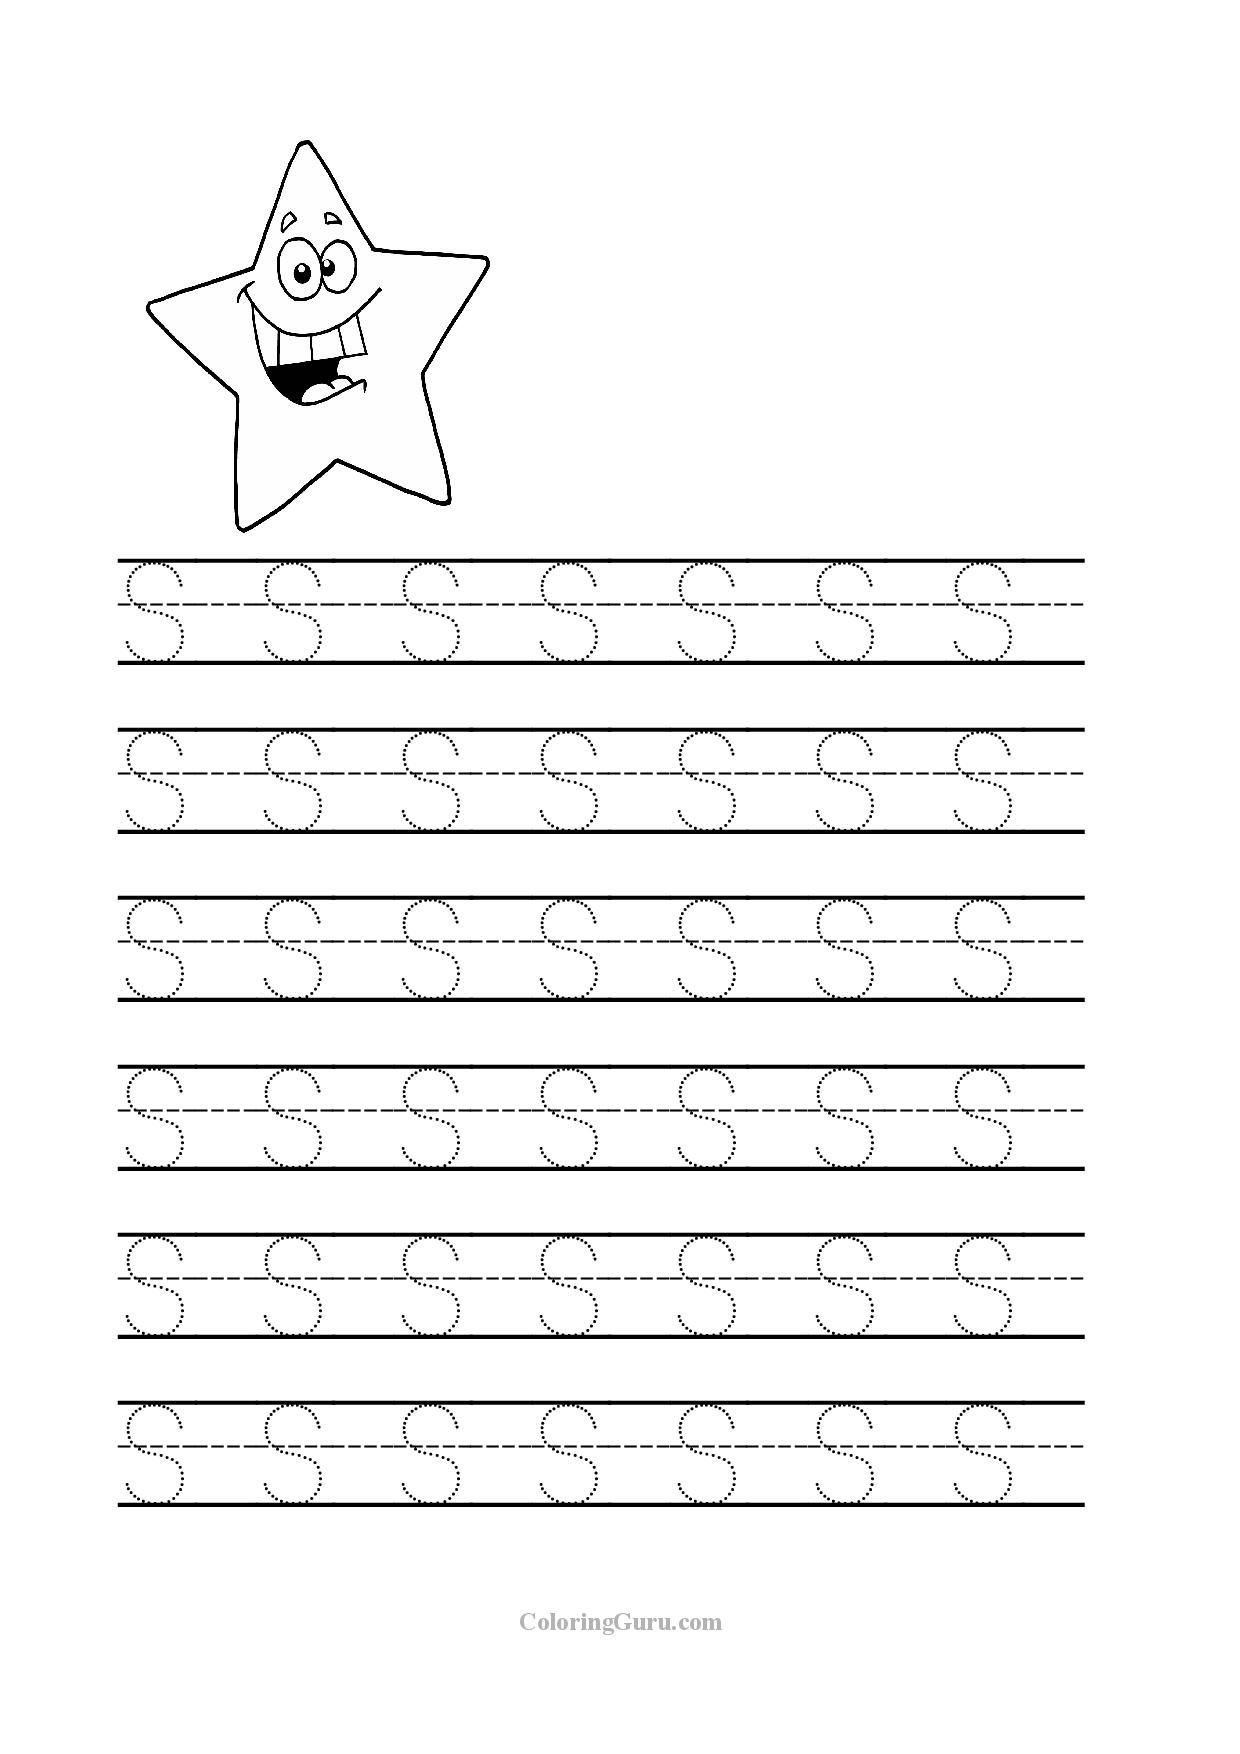 worksheet Trace The Letter S Worksheets free printable tracing letter s worksheets for preschool teaching preschool